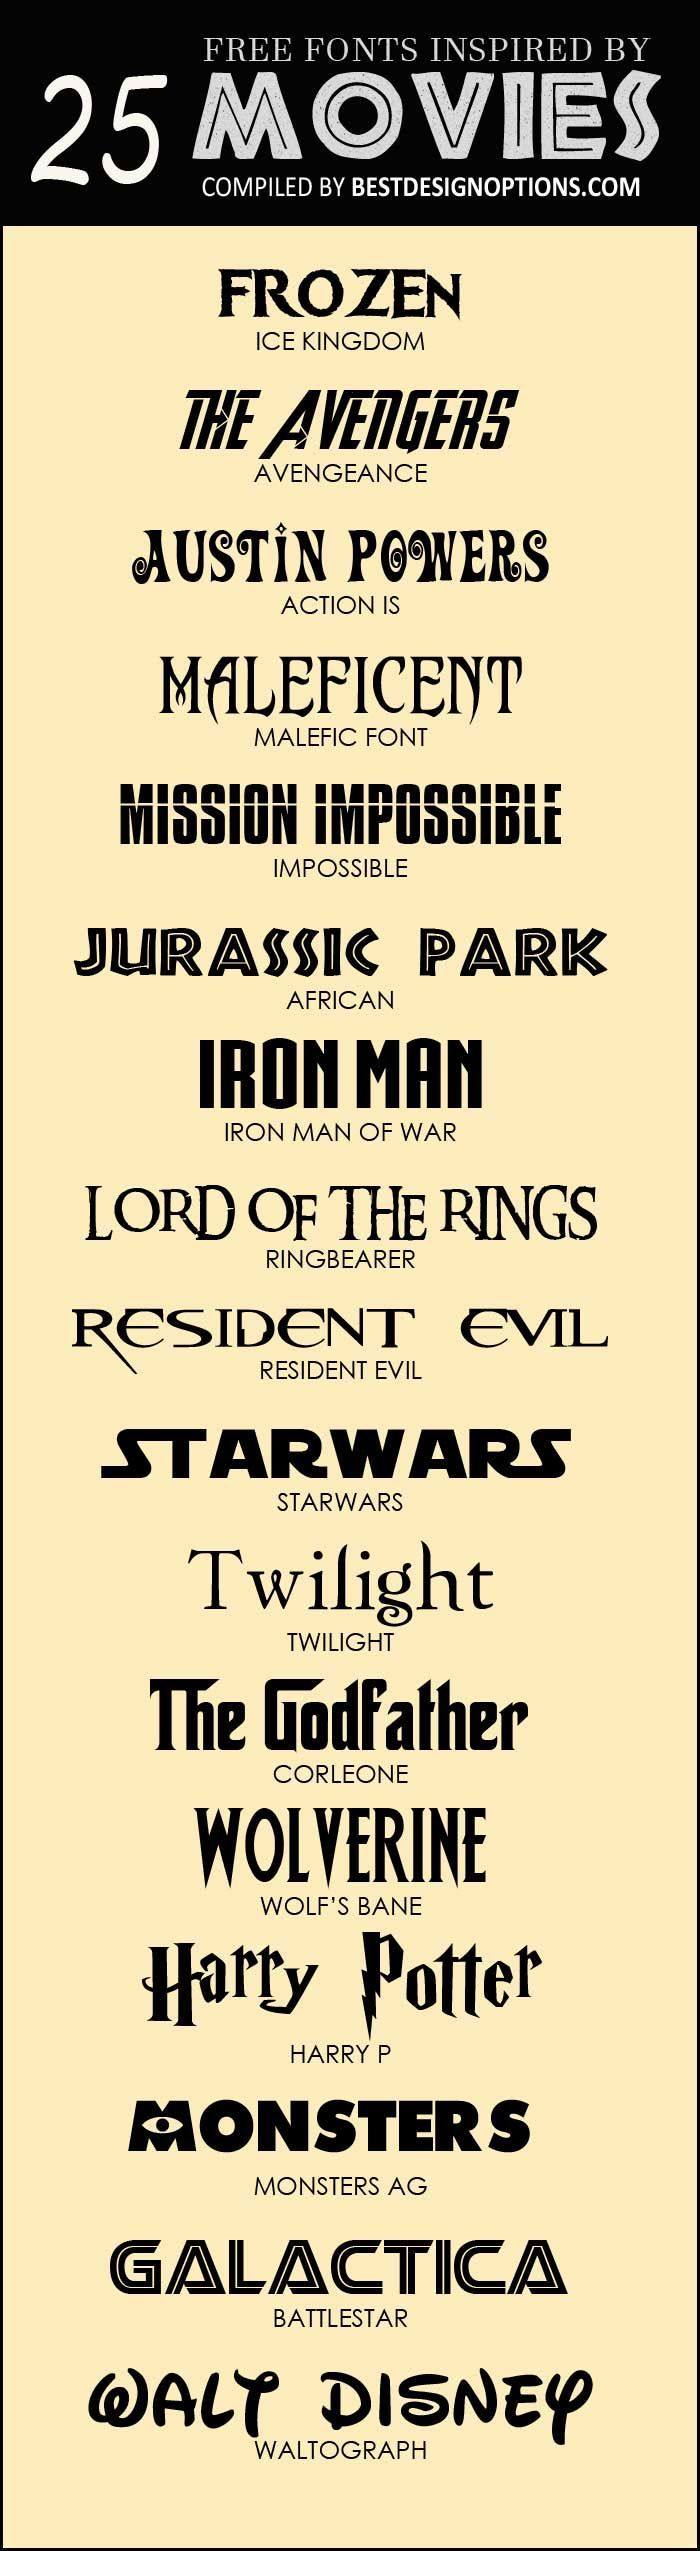 Find free fonts based on the type used in popular box office hit movies and use them to create your own posters of your favorite films.